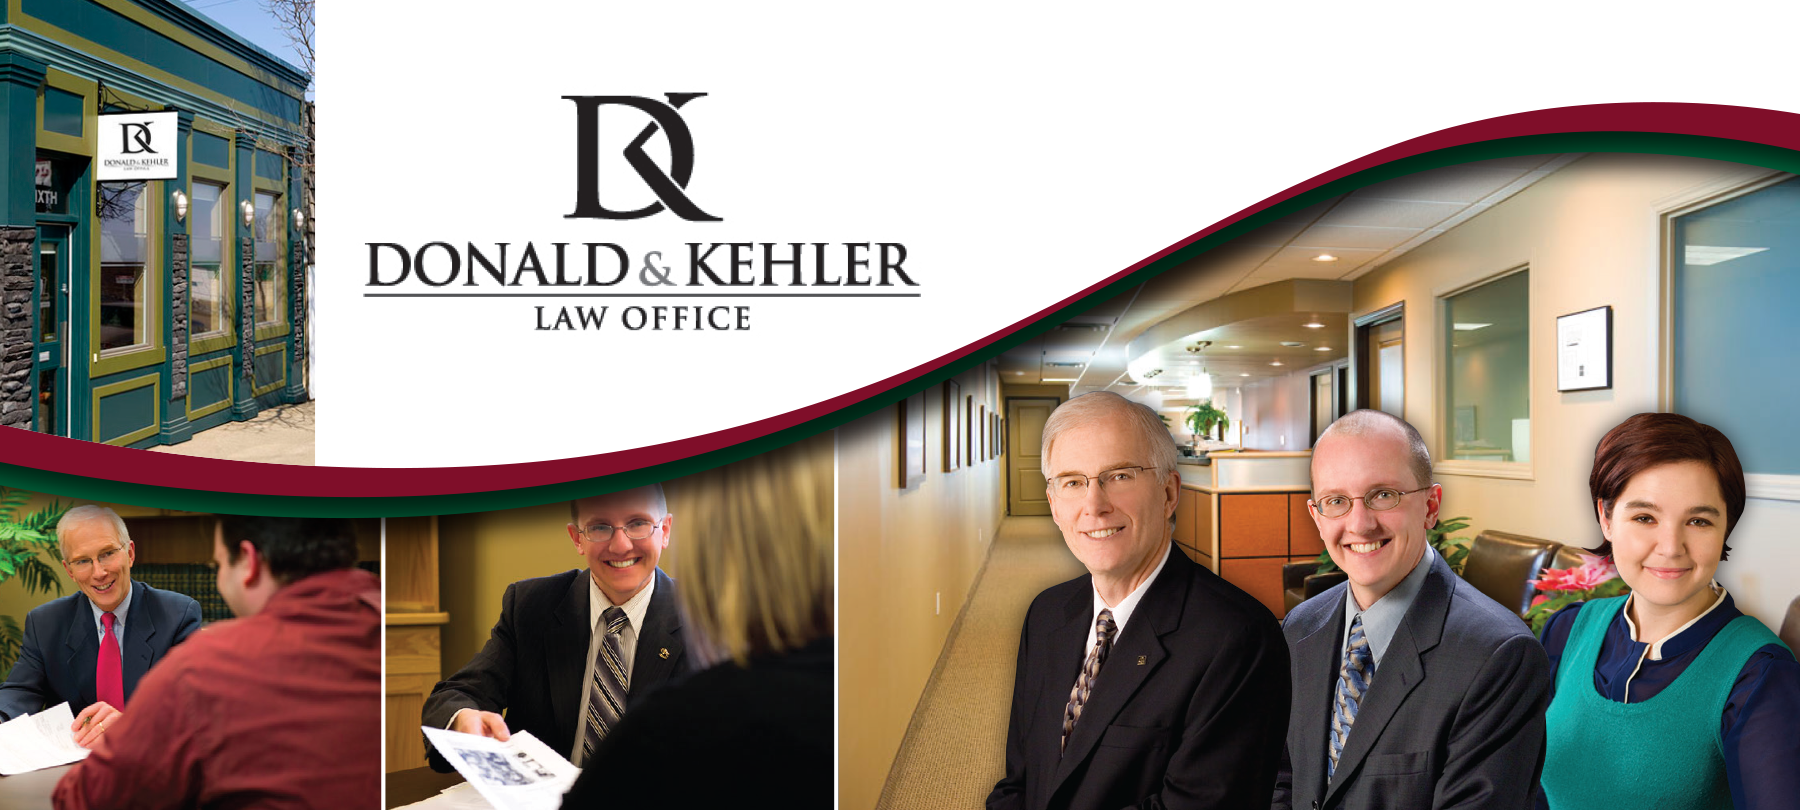 Donald & Kehler Law Office - Legal Services, Lawyer